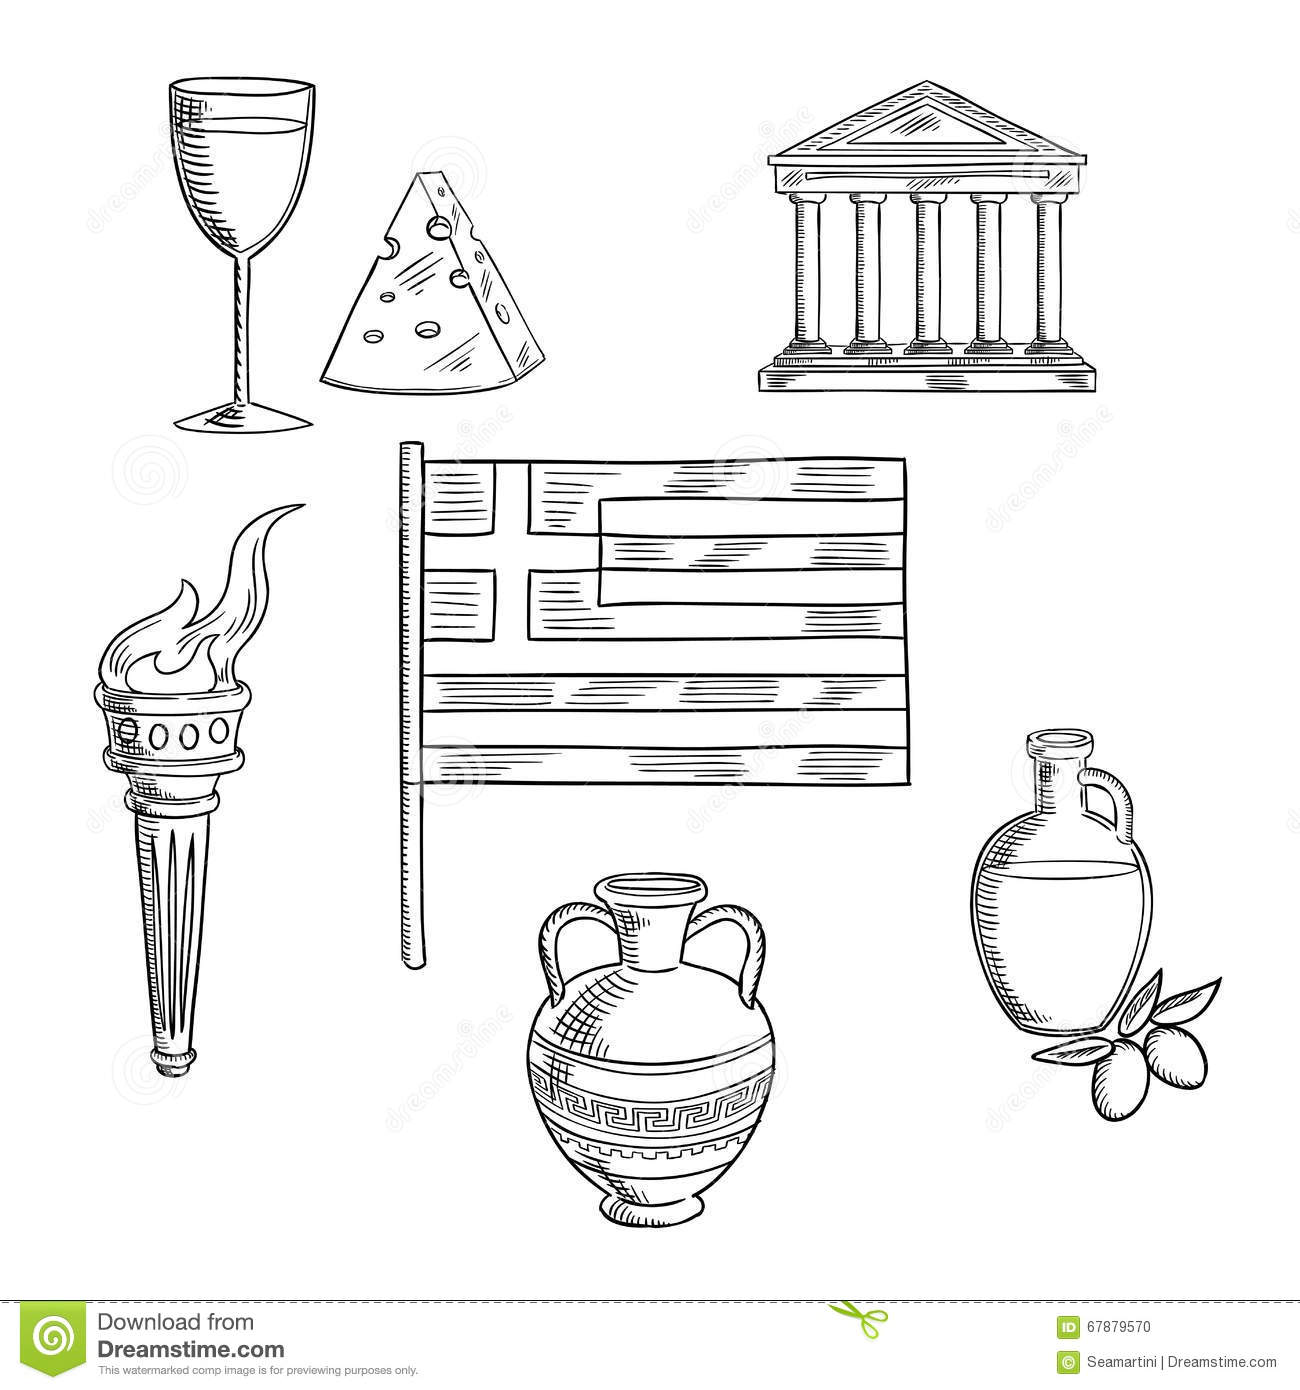 Culture symbols of ancient greece stock vector illustration traditional greece symbols and culture objects stock photo biocorpaavc